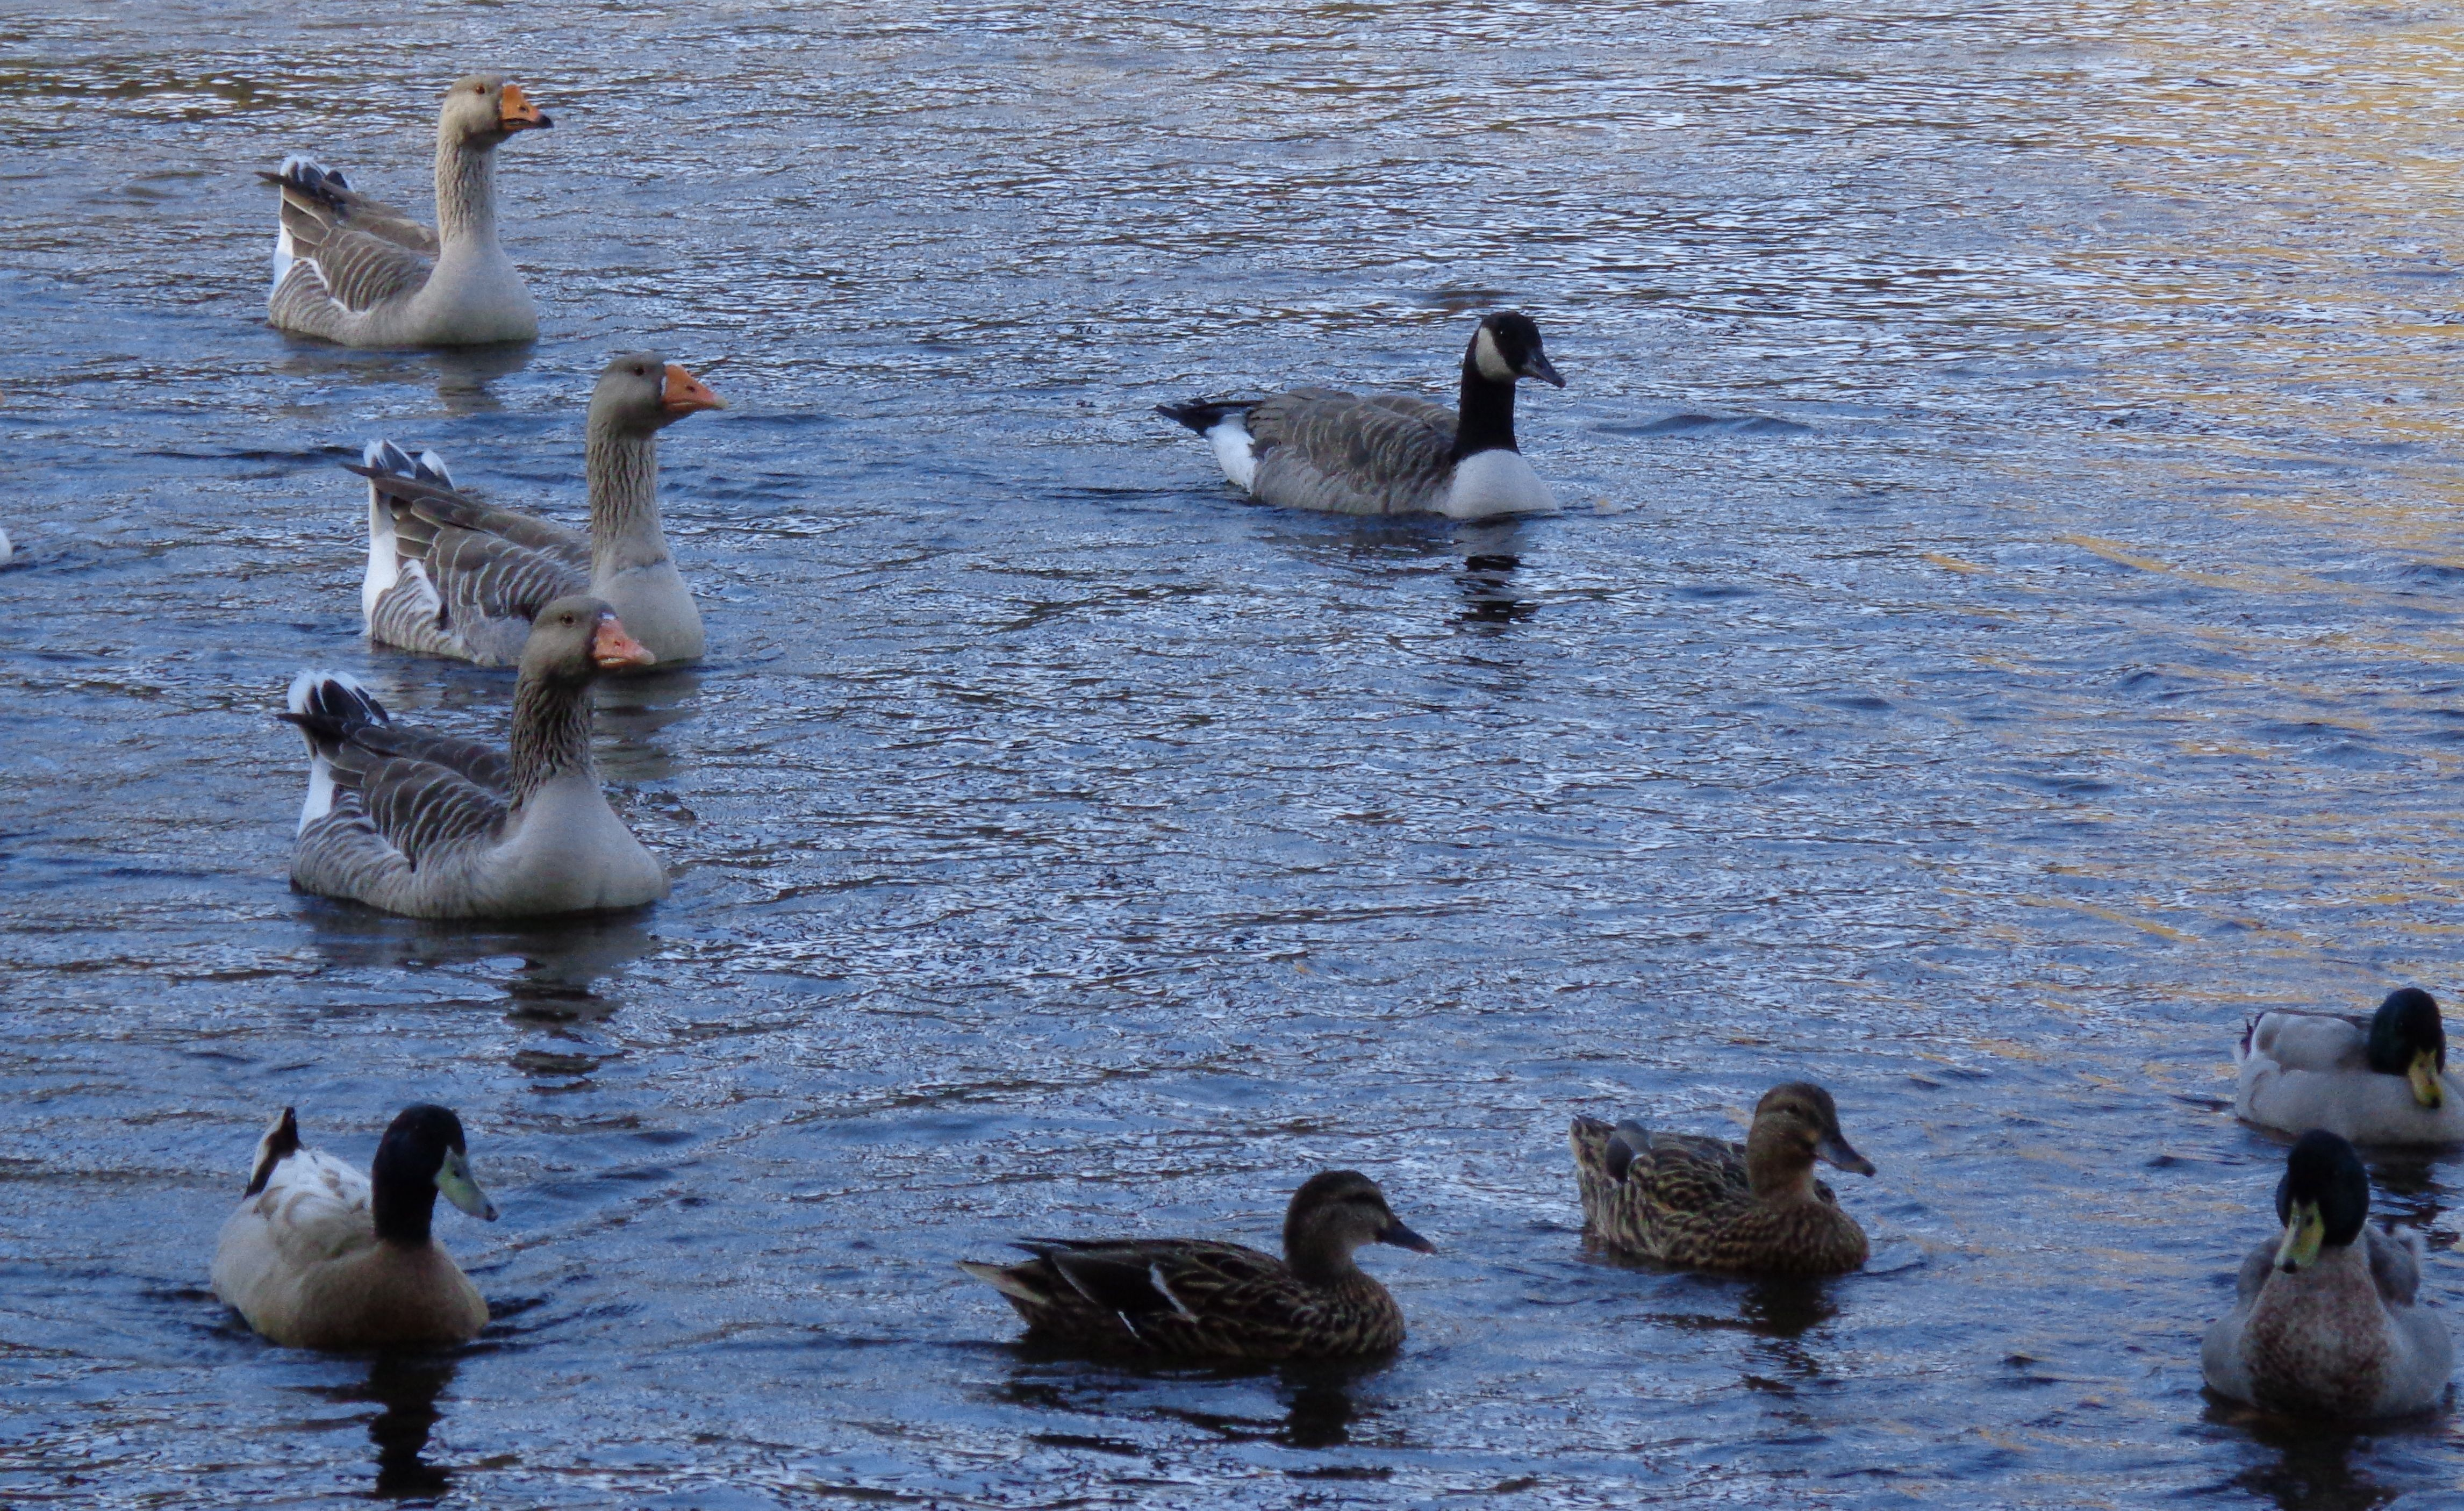 Geese and ducks swimming in the Youghiogheny River